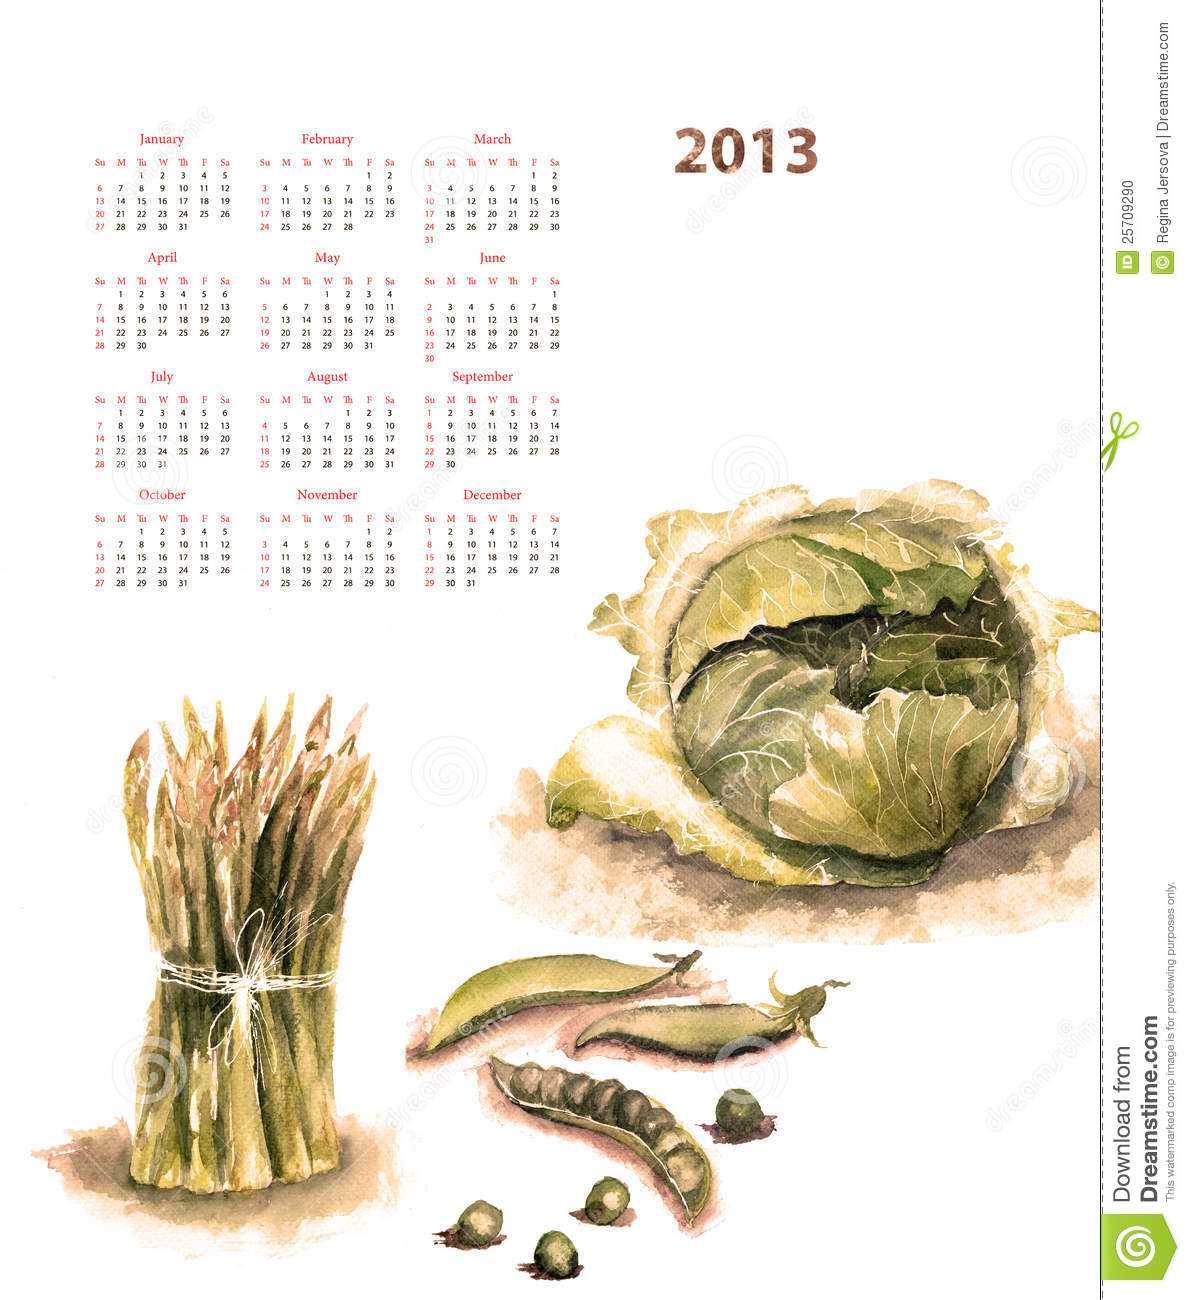 More similar stock images of ` Calendar for 2013 with vegetable `